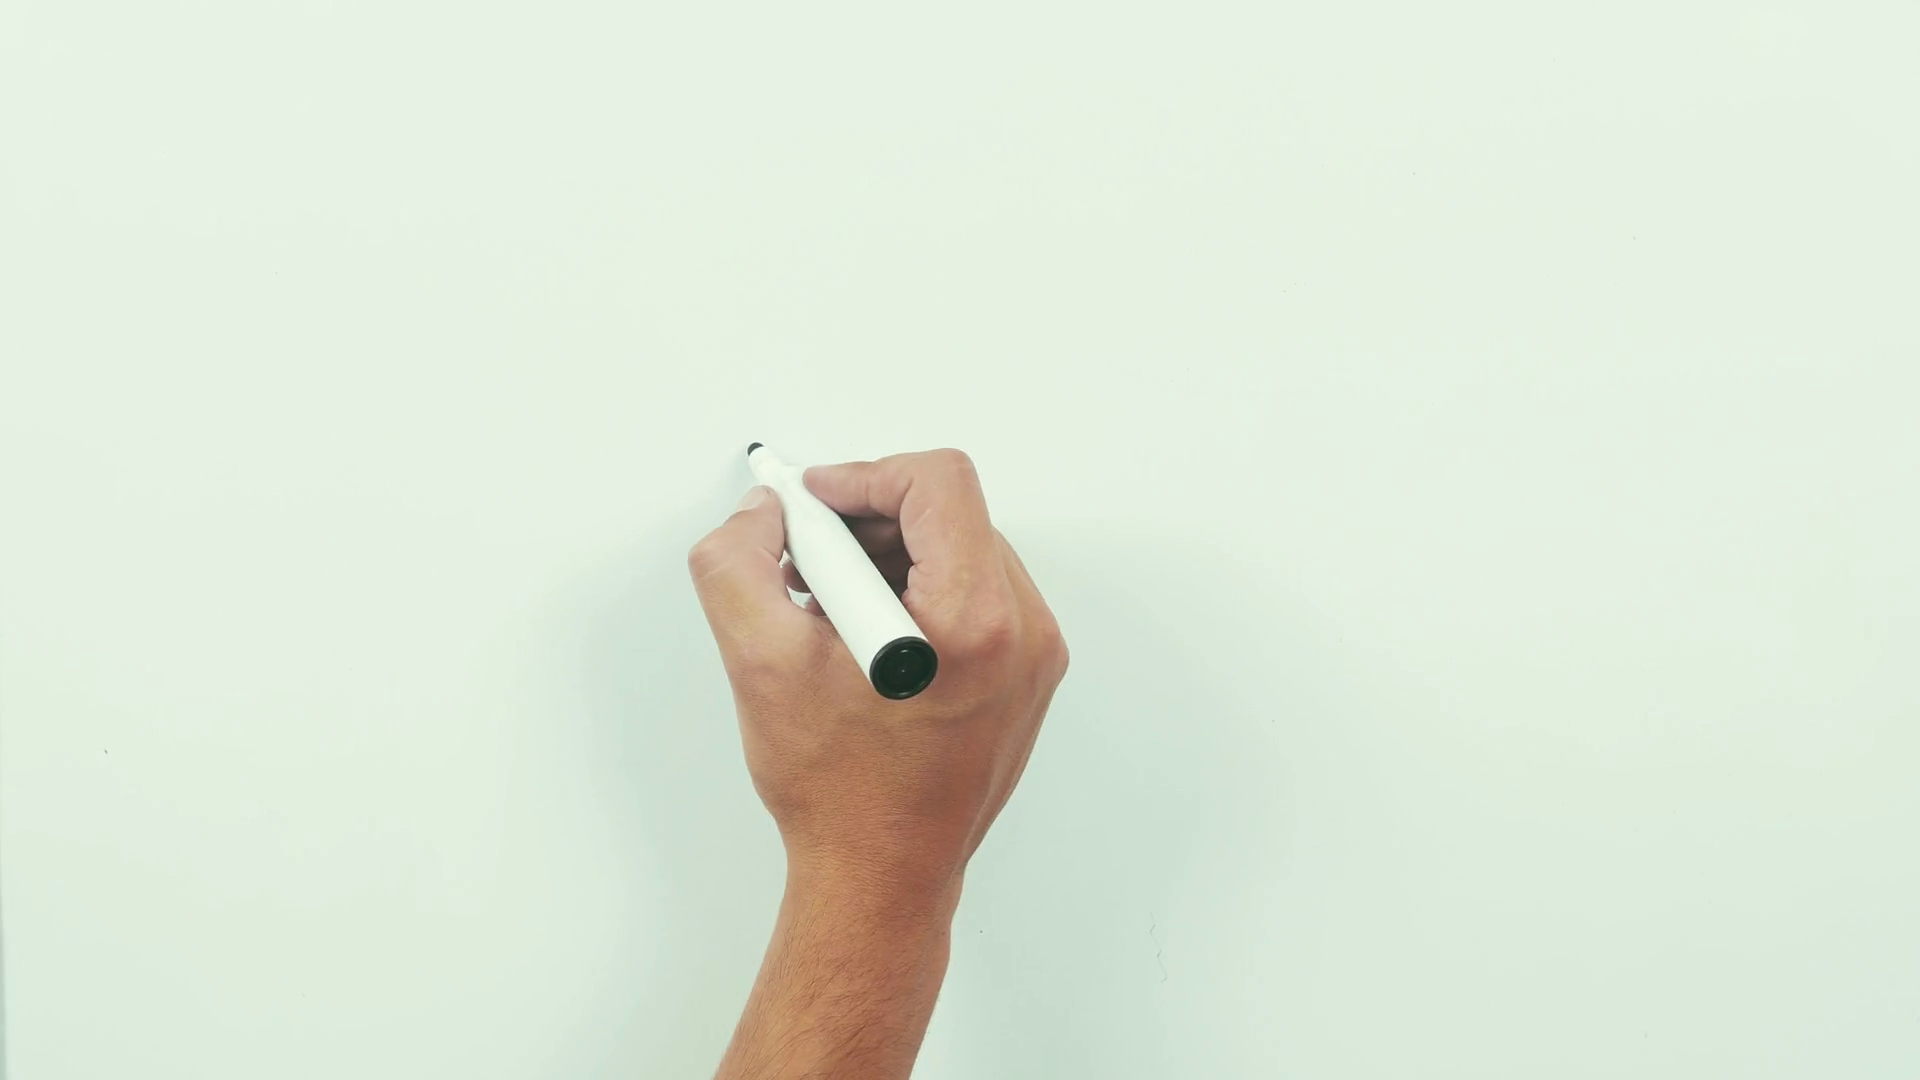 Drawing dollar sign. Black marker on whiteboard. Stock Video Footage.